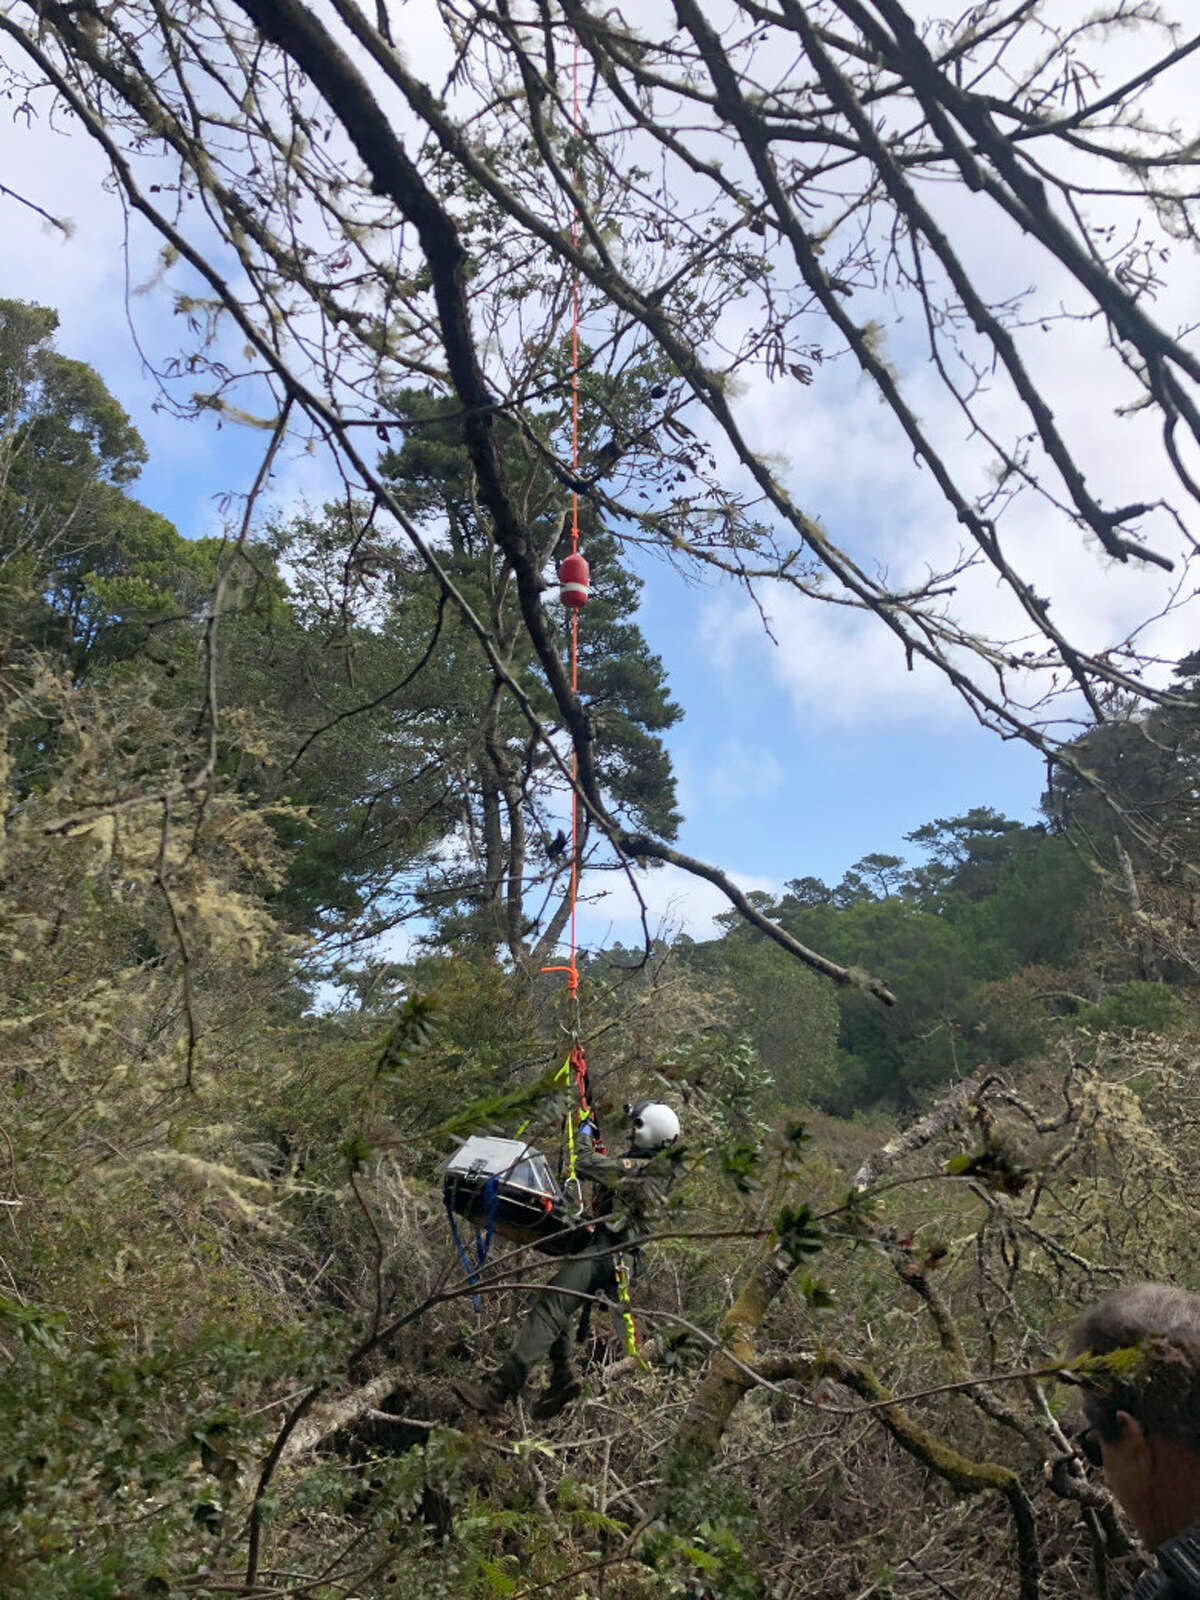 Asearch team works torescue a Palo Alto couple that went missing in westMarinCounty in February 2020.